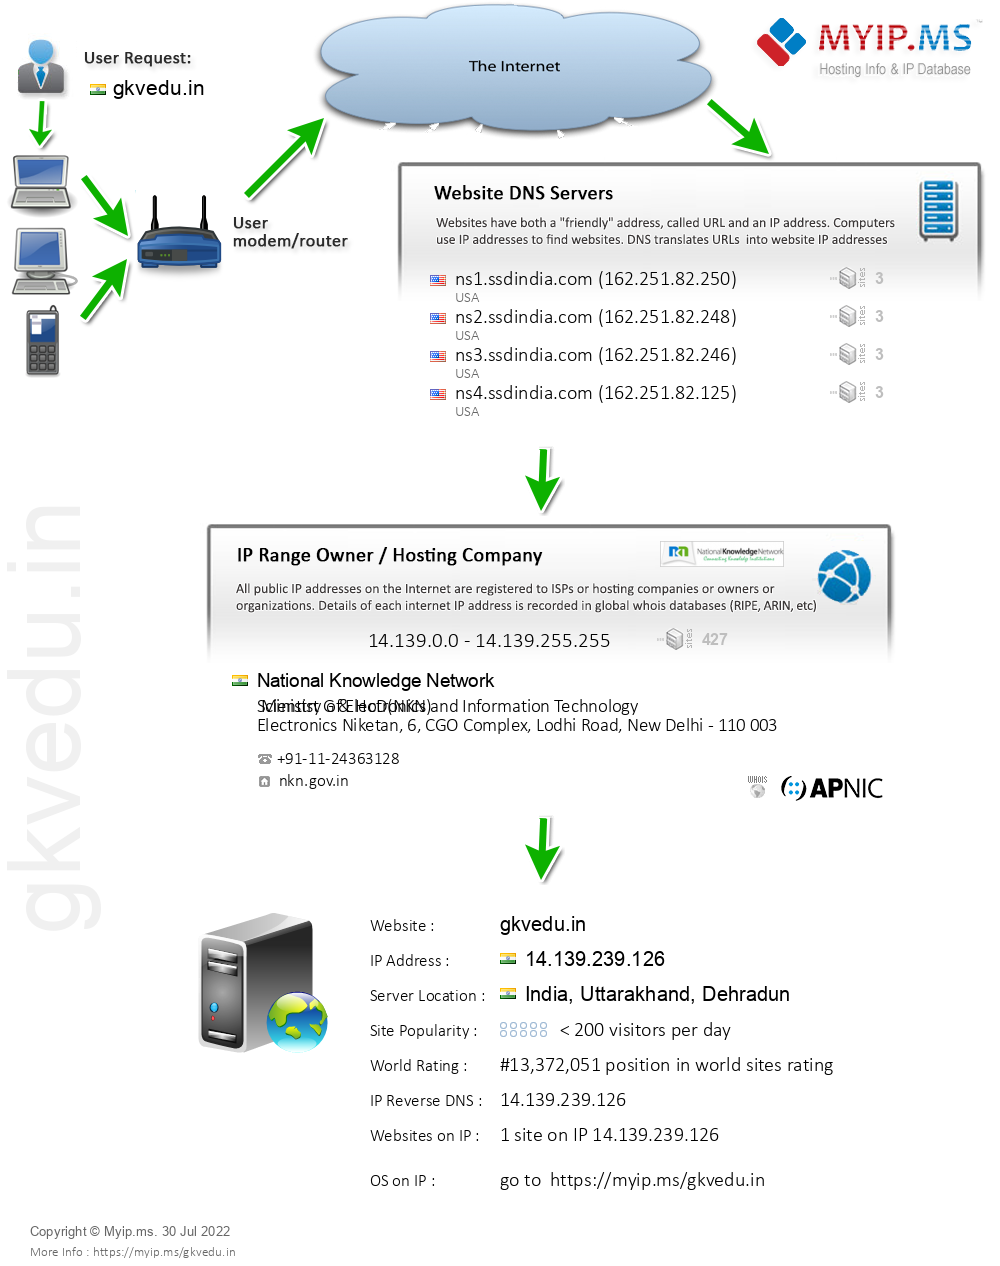 Gkvedu.in - Website Hosting Visual IP Diagram